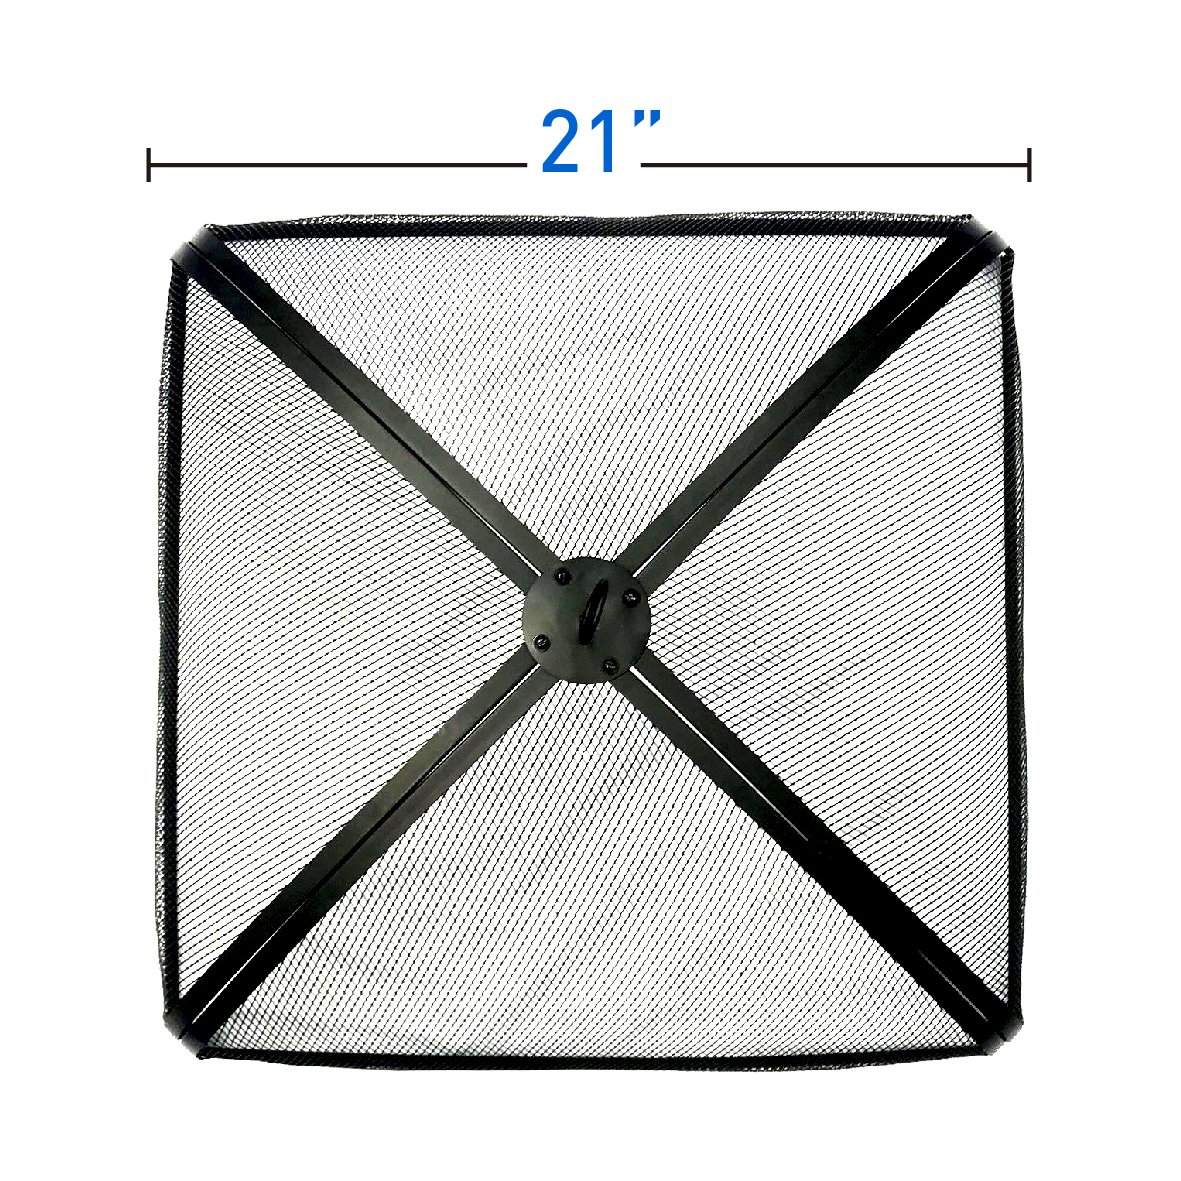 EasyGo FIRE SCREEN – FIRE PIT COVER – FIRE SCREEN PROTECTOR (21'' Square)